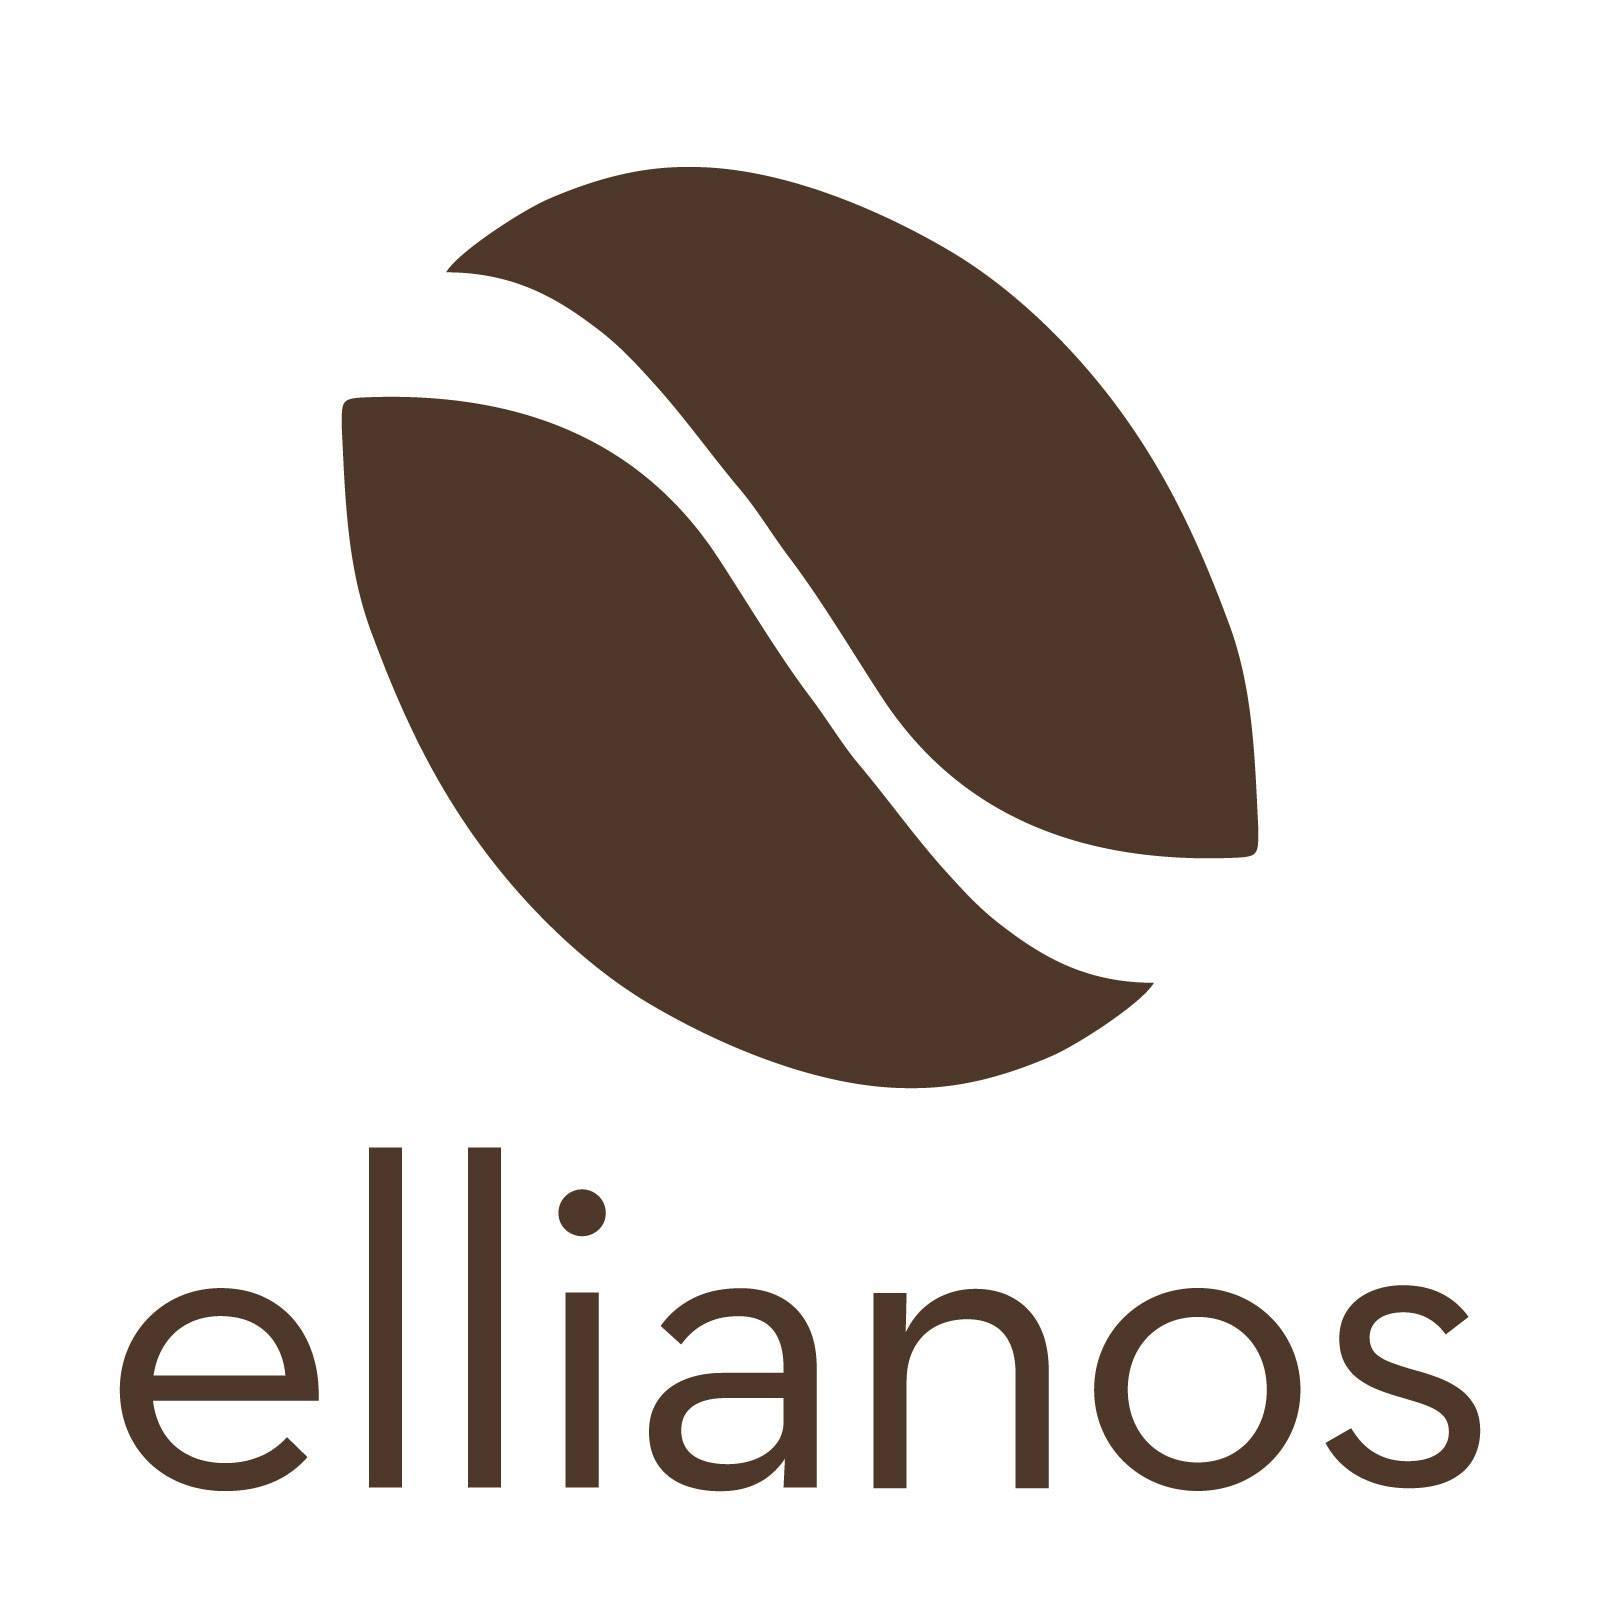 ELLIANOS-LOGO.jpg